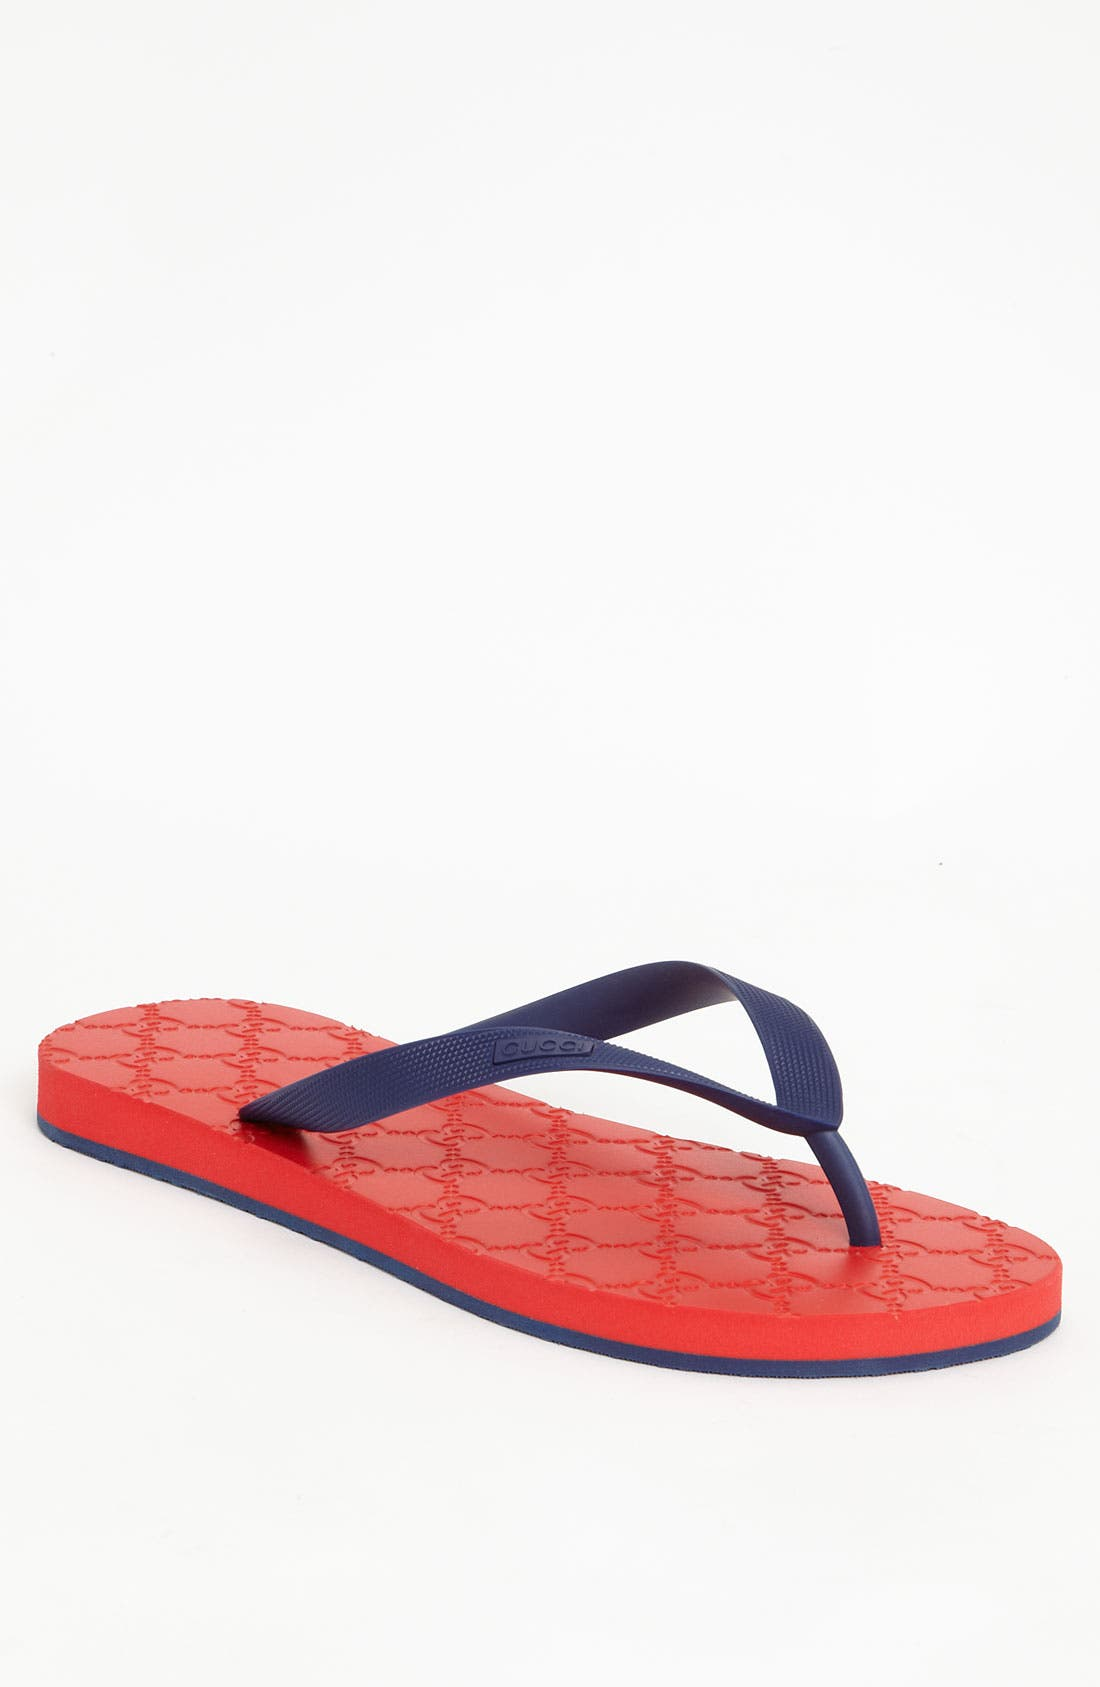 Alternate Image 1 Selected - Gucci 'Bedlam' Flip Flop